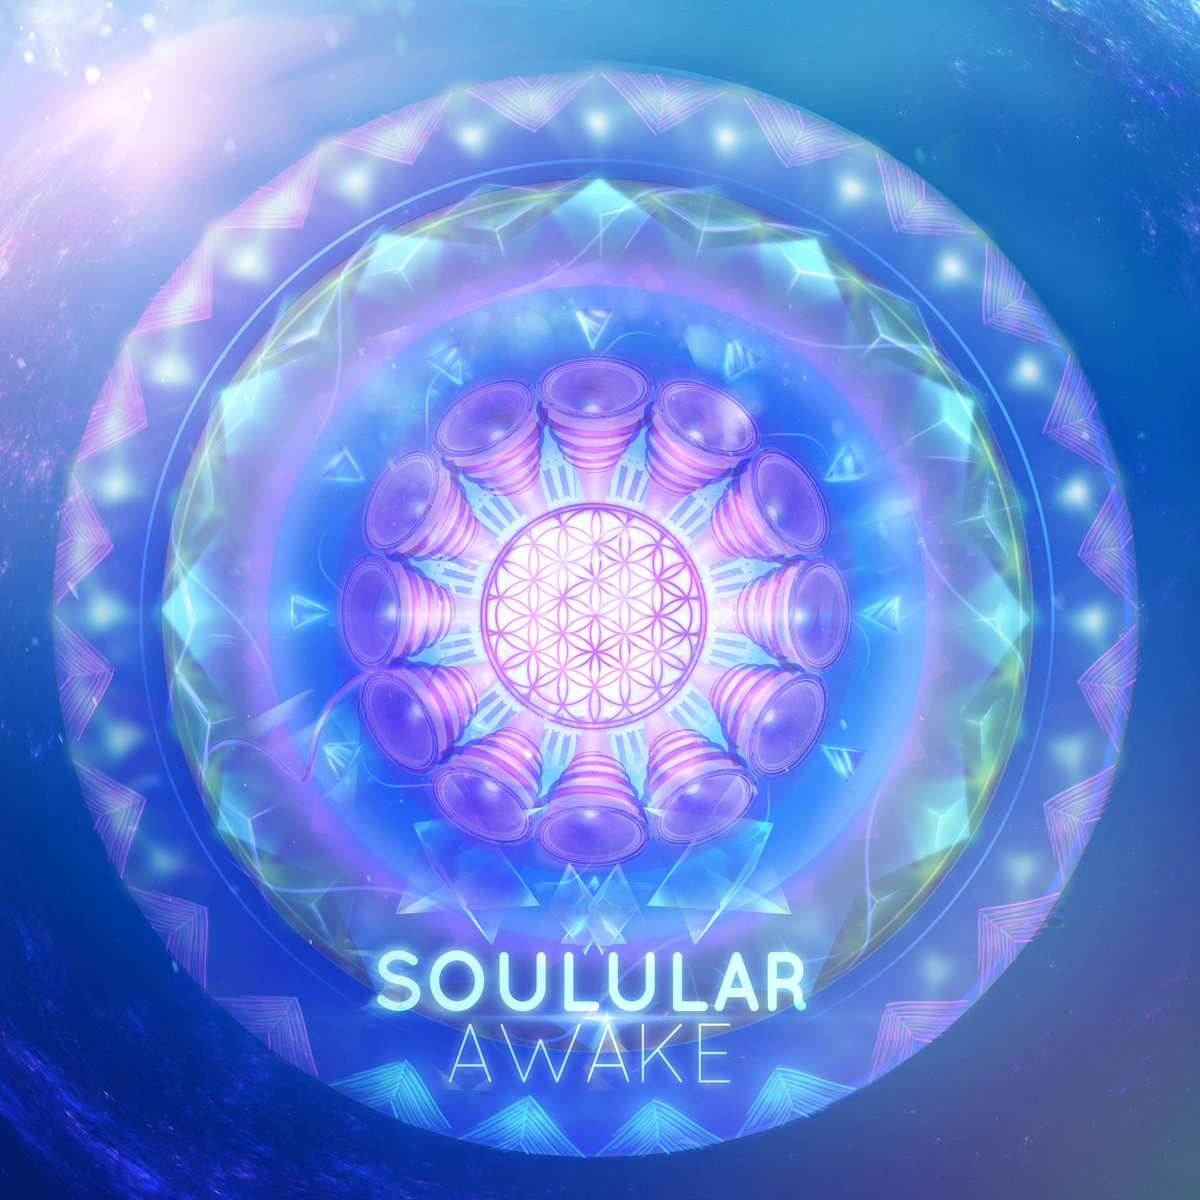 Soulular - Goddess @ 'AWAKE' album (los angeles, chill)